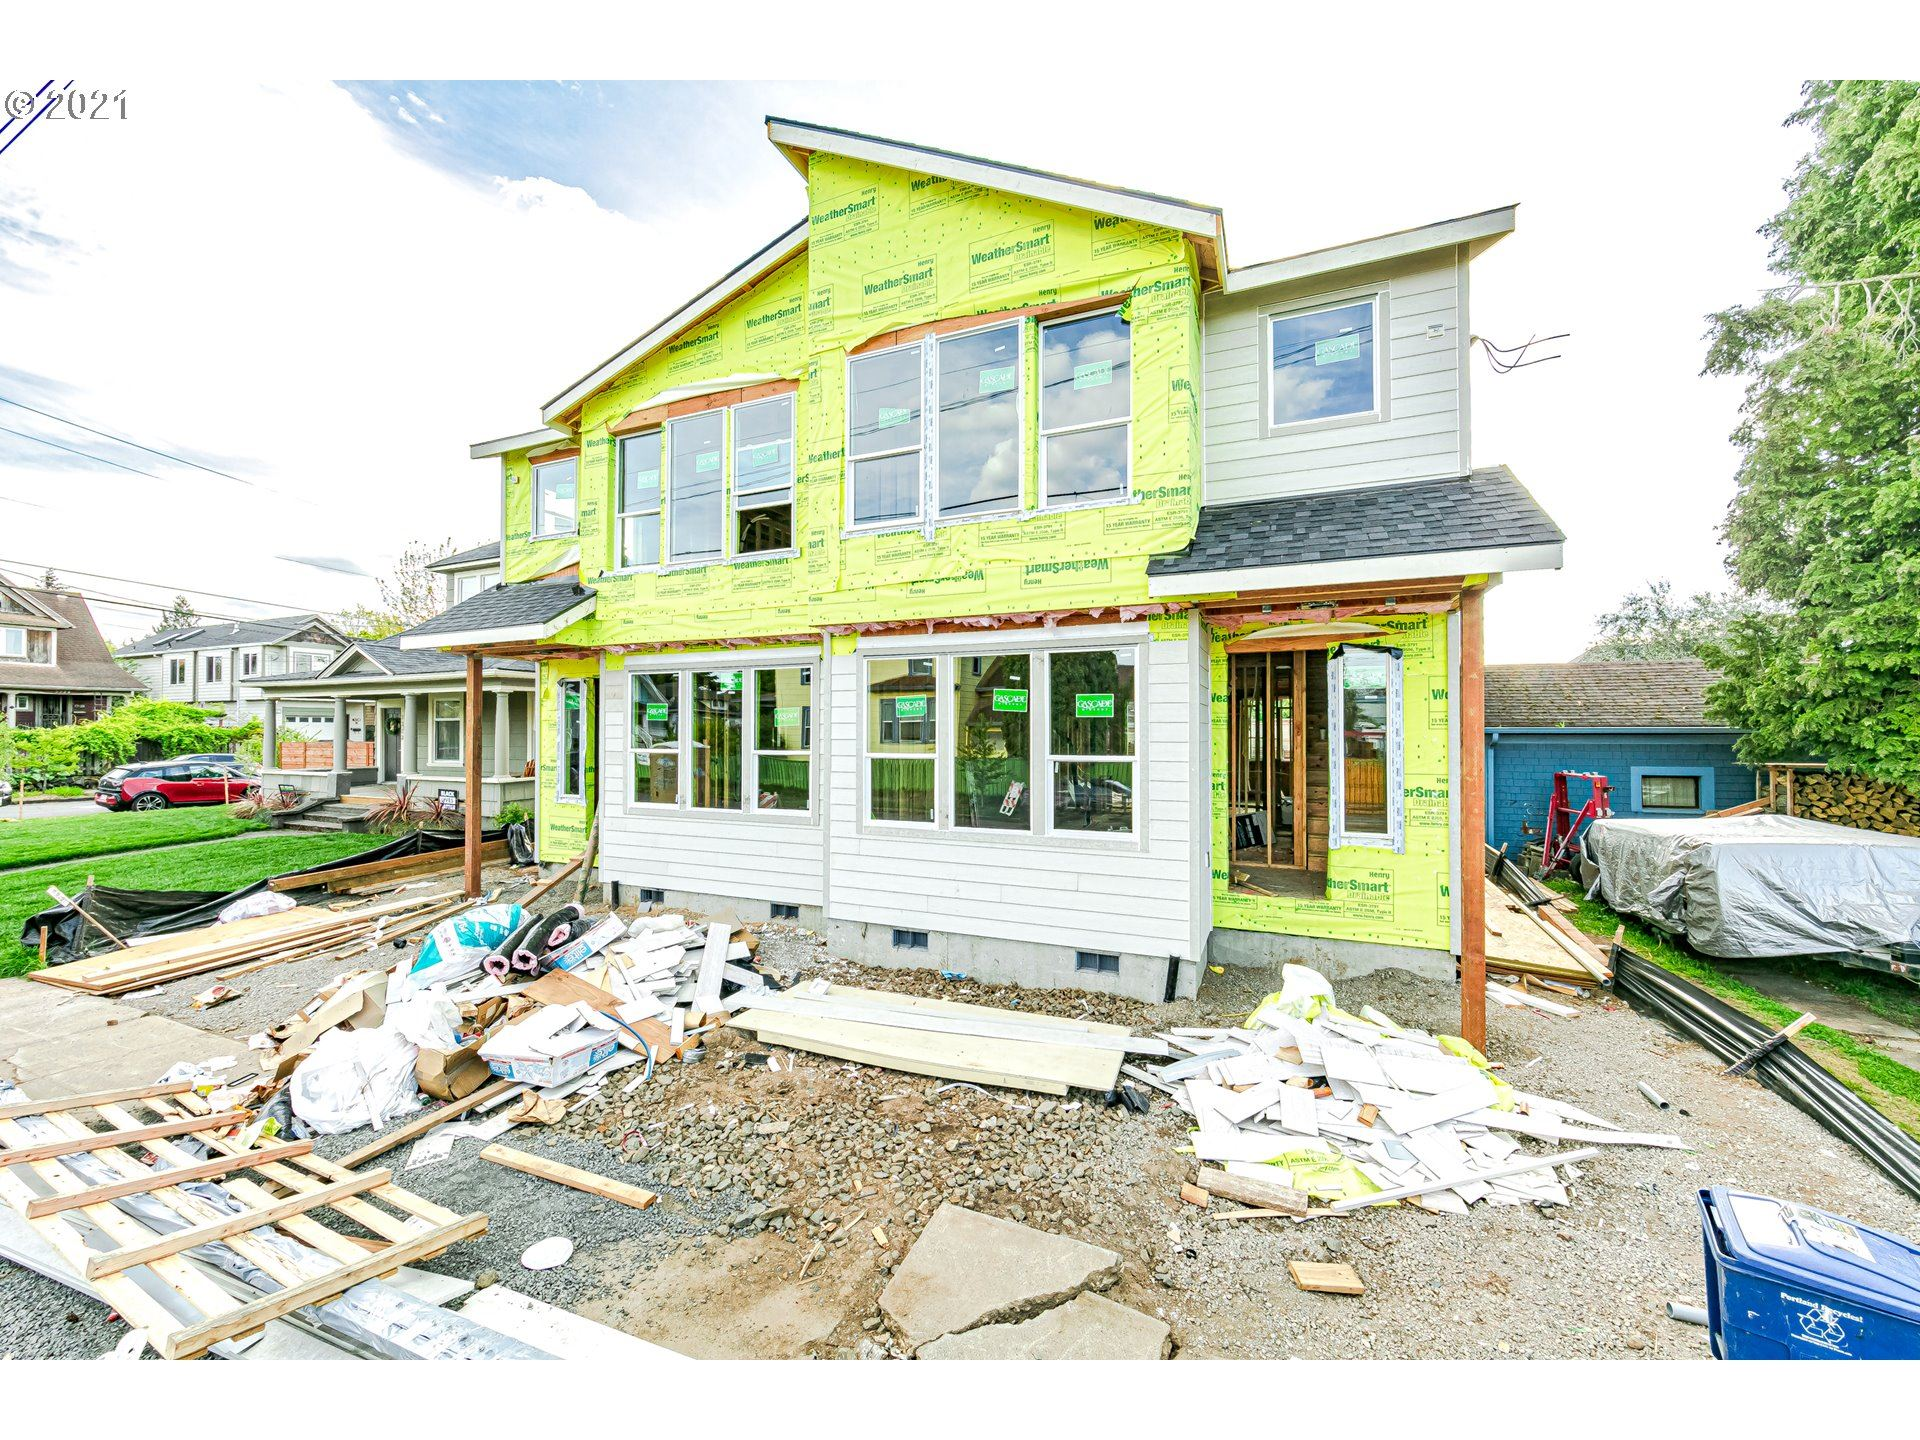 3923 SE 54TH AVE, Portland, OR 97206 - MLS#: 21147961